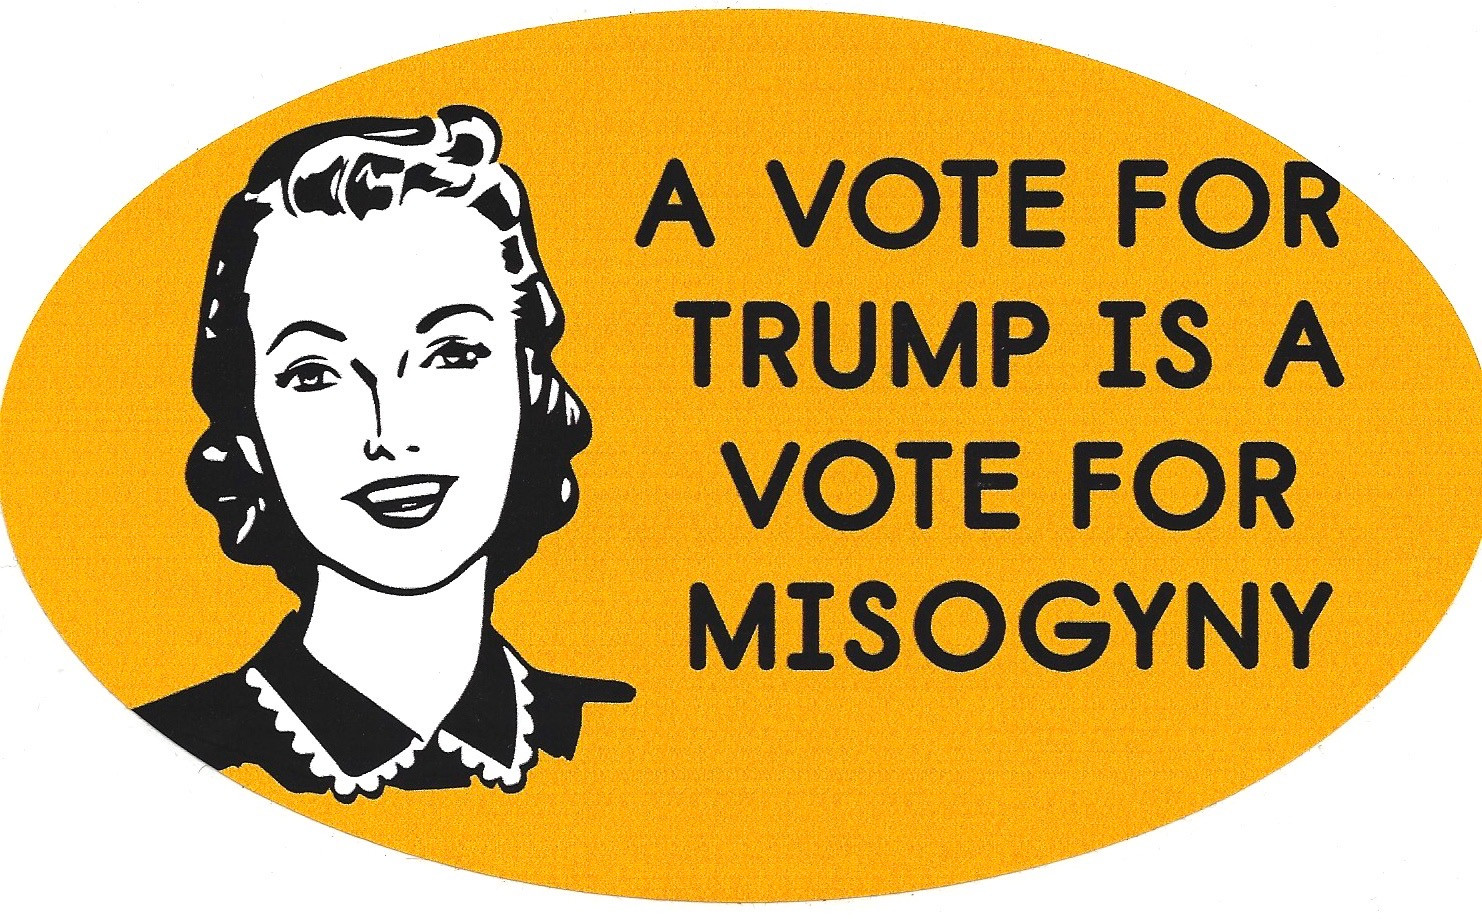 A Vote for Trump is a Vote for Misogyny